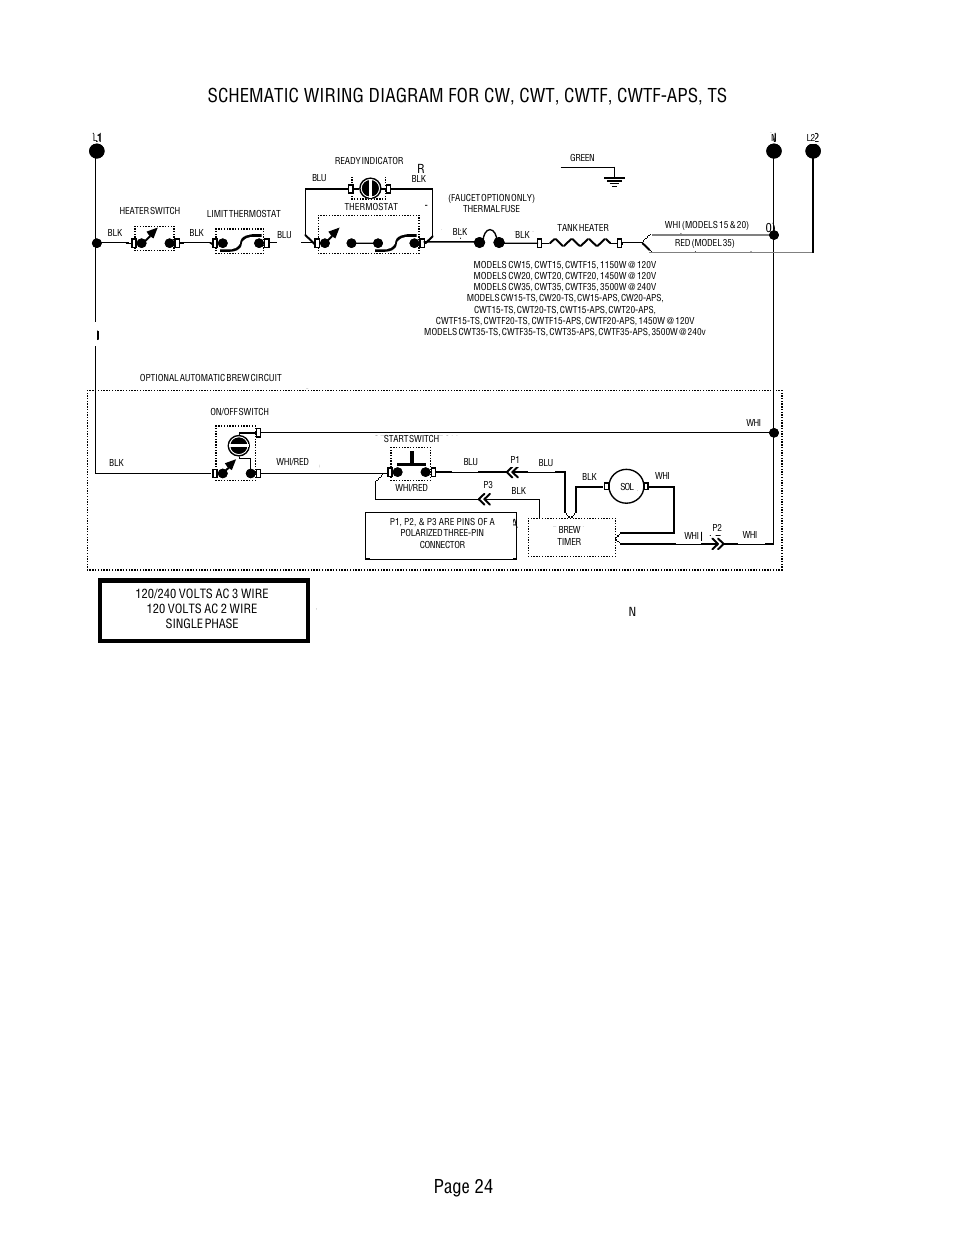 Bunn Switch Wiring Diagram Library Parts Catalog 19 Images